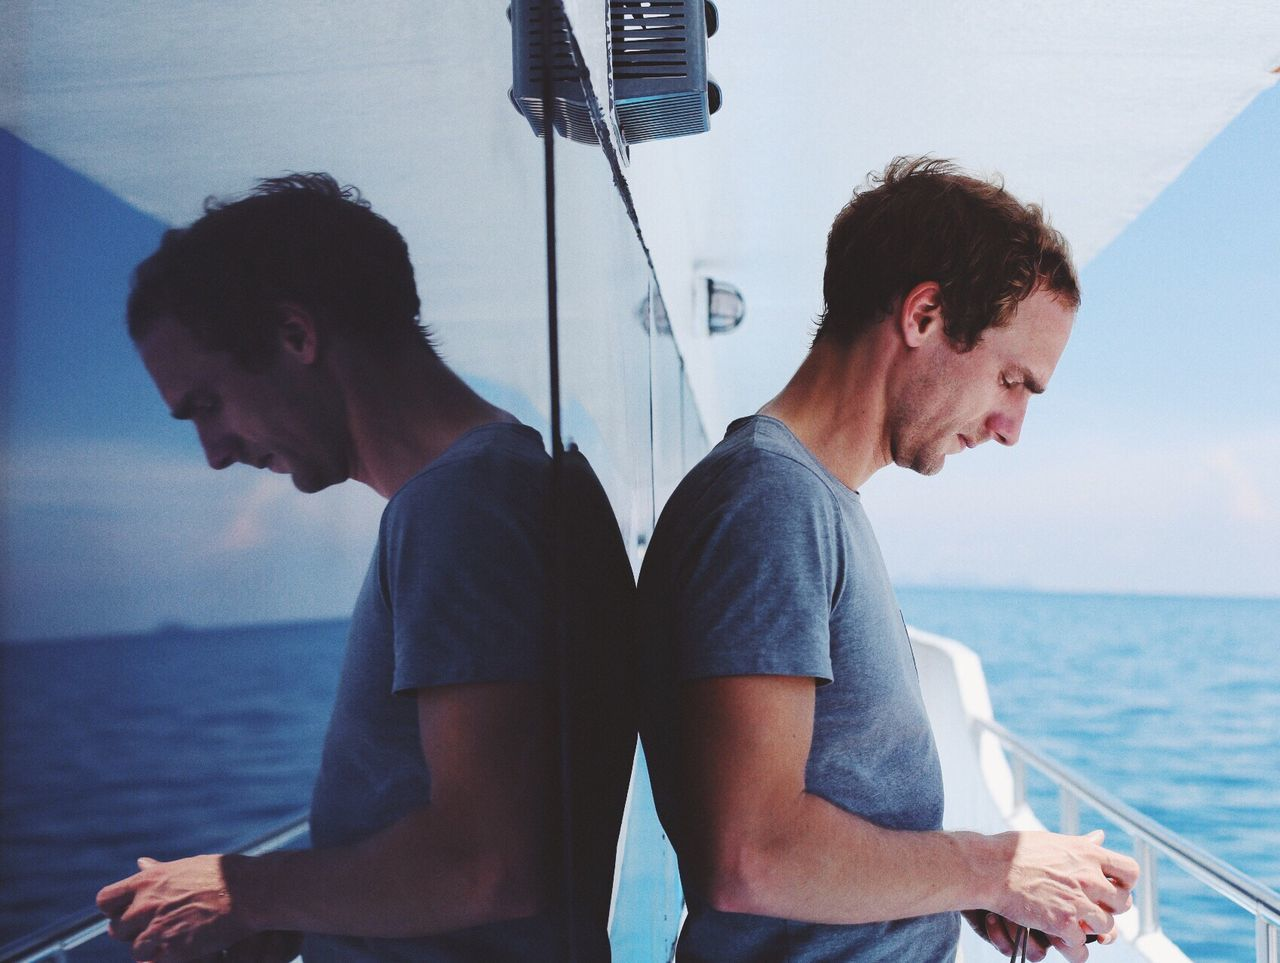 TWO MEN IN A BOAT SAILING